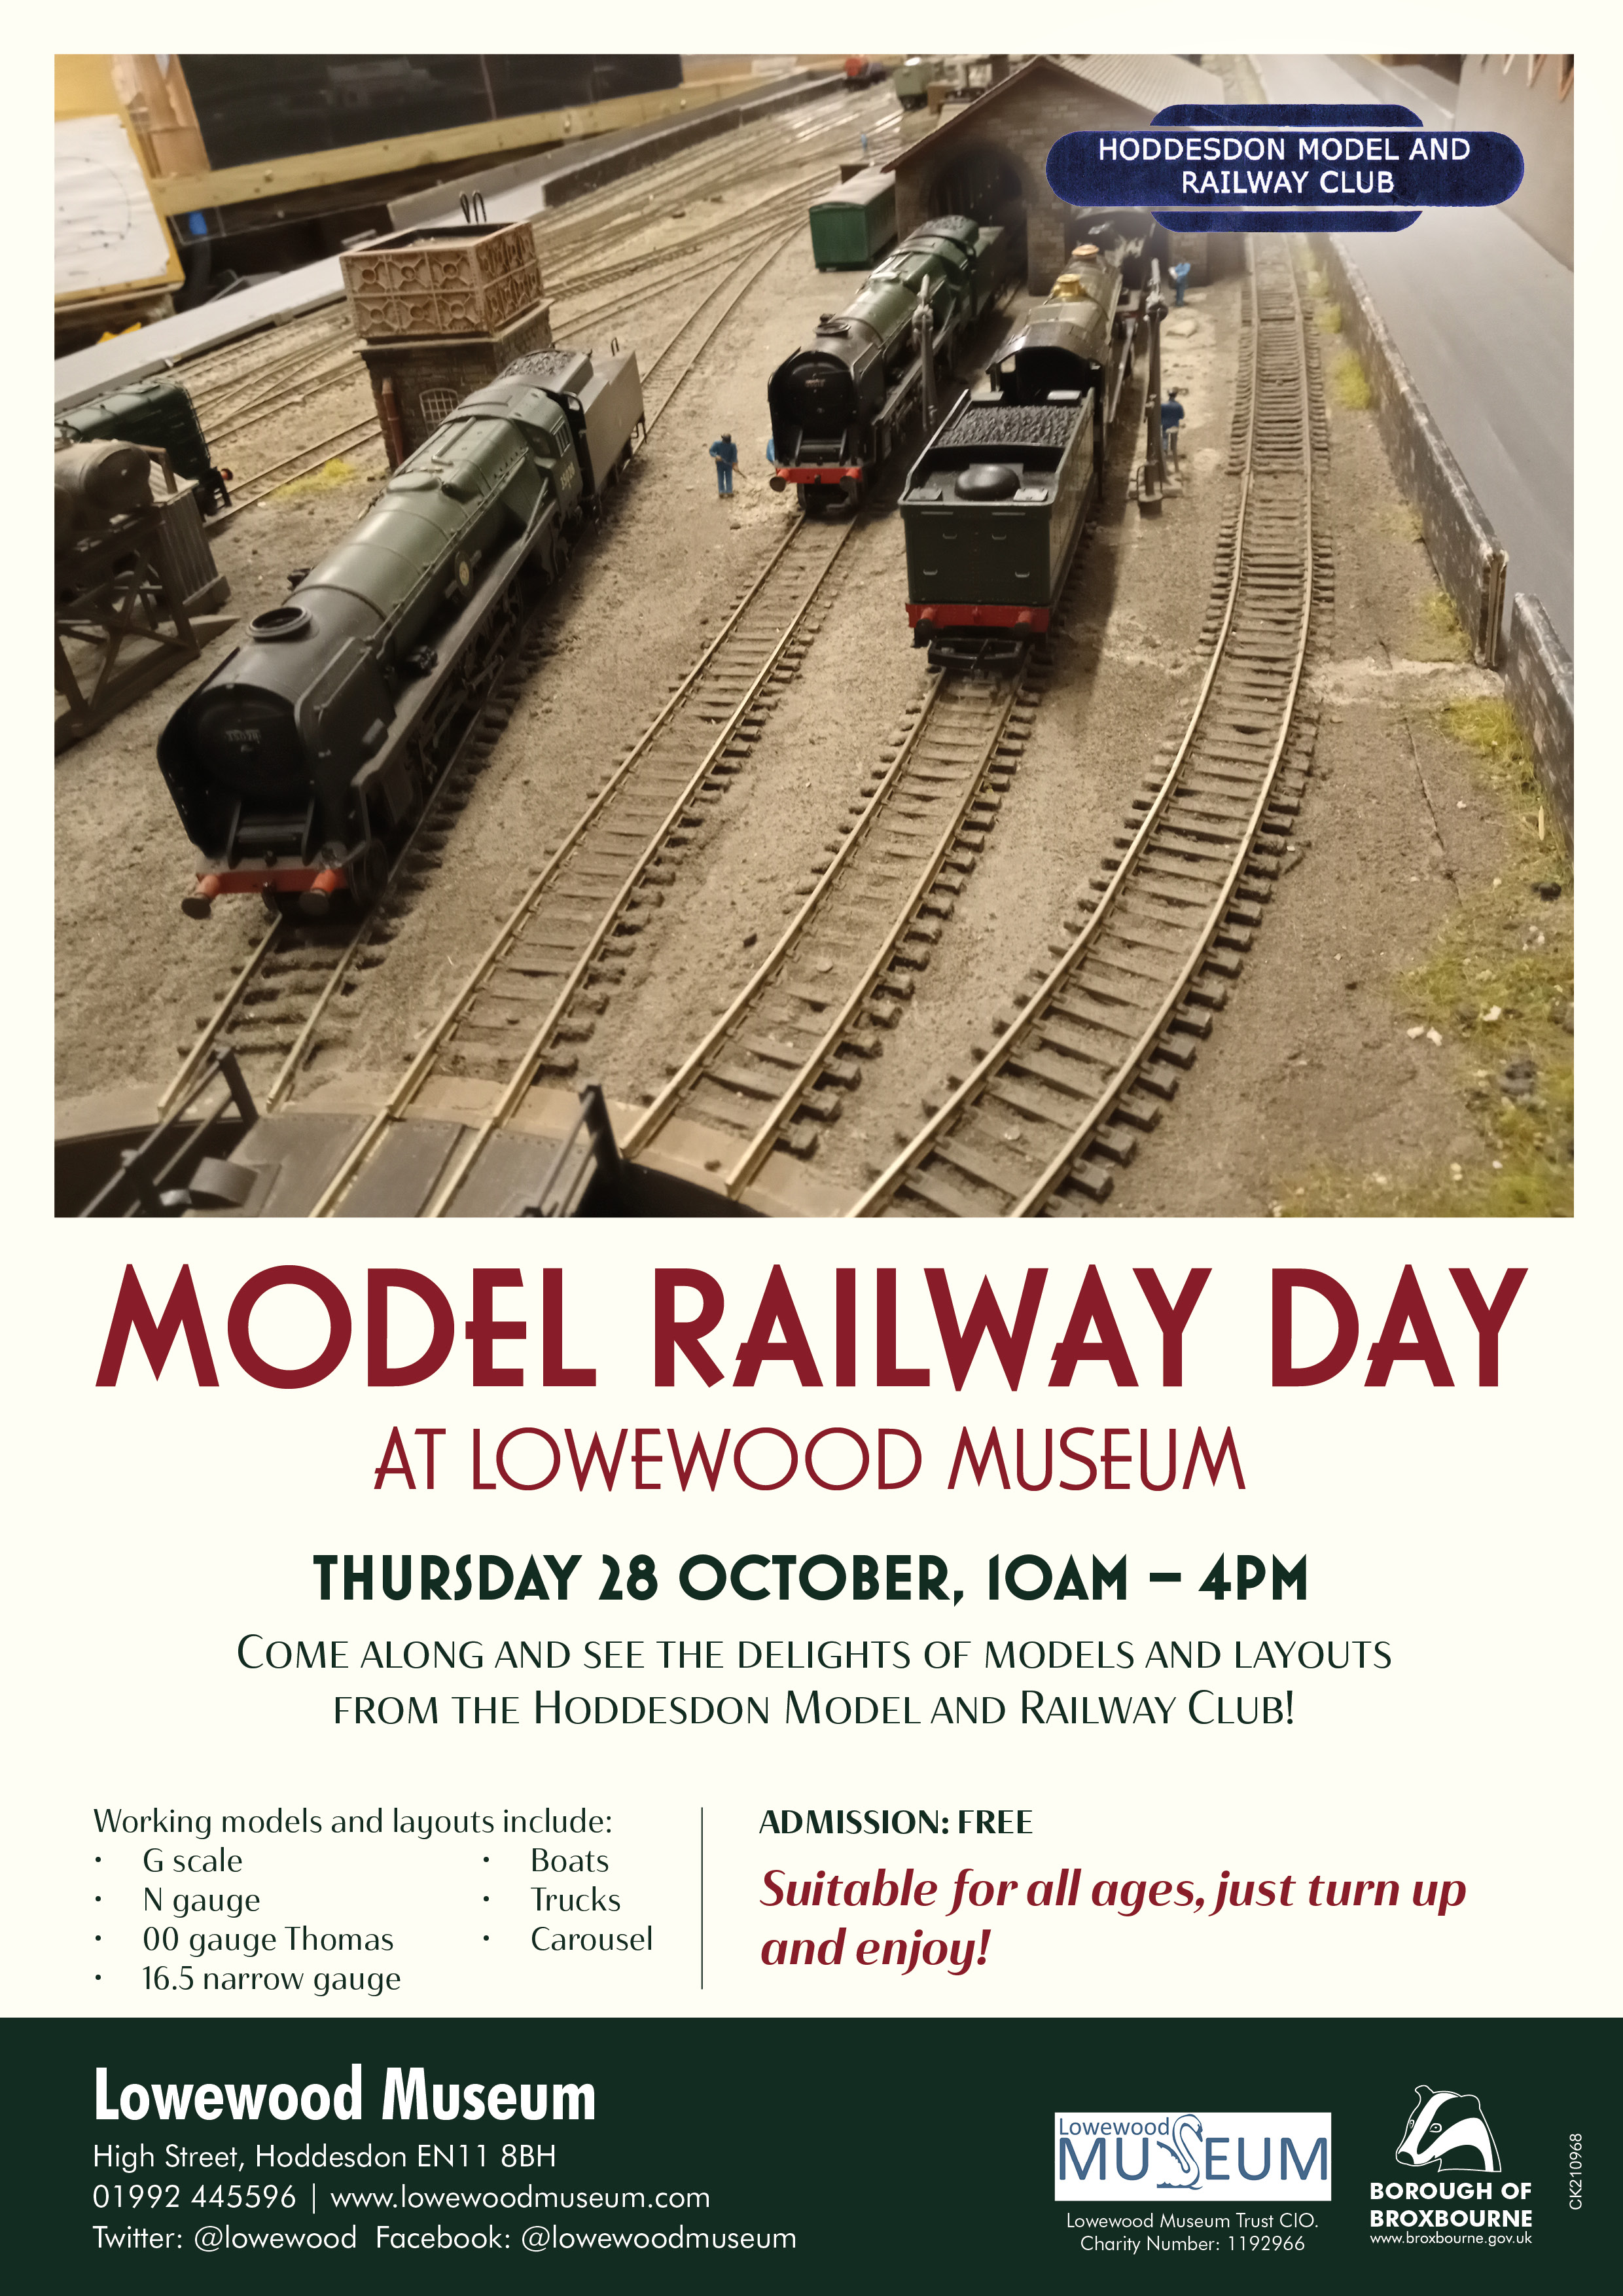 Model Railway Day at Lowewood Museum on Thursday 28 October 2021